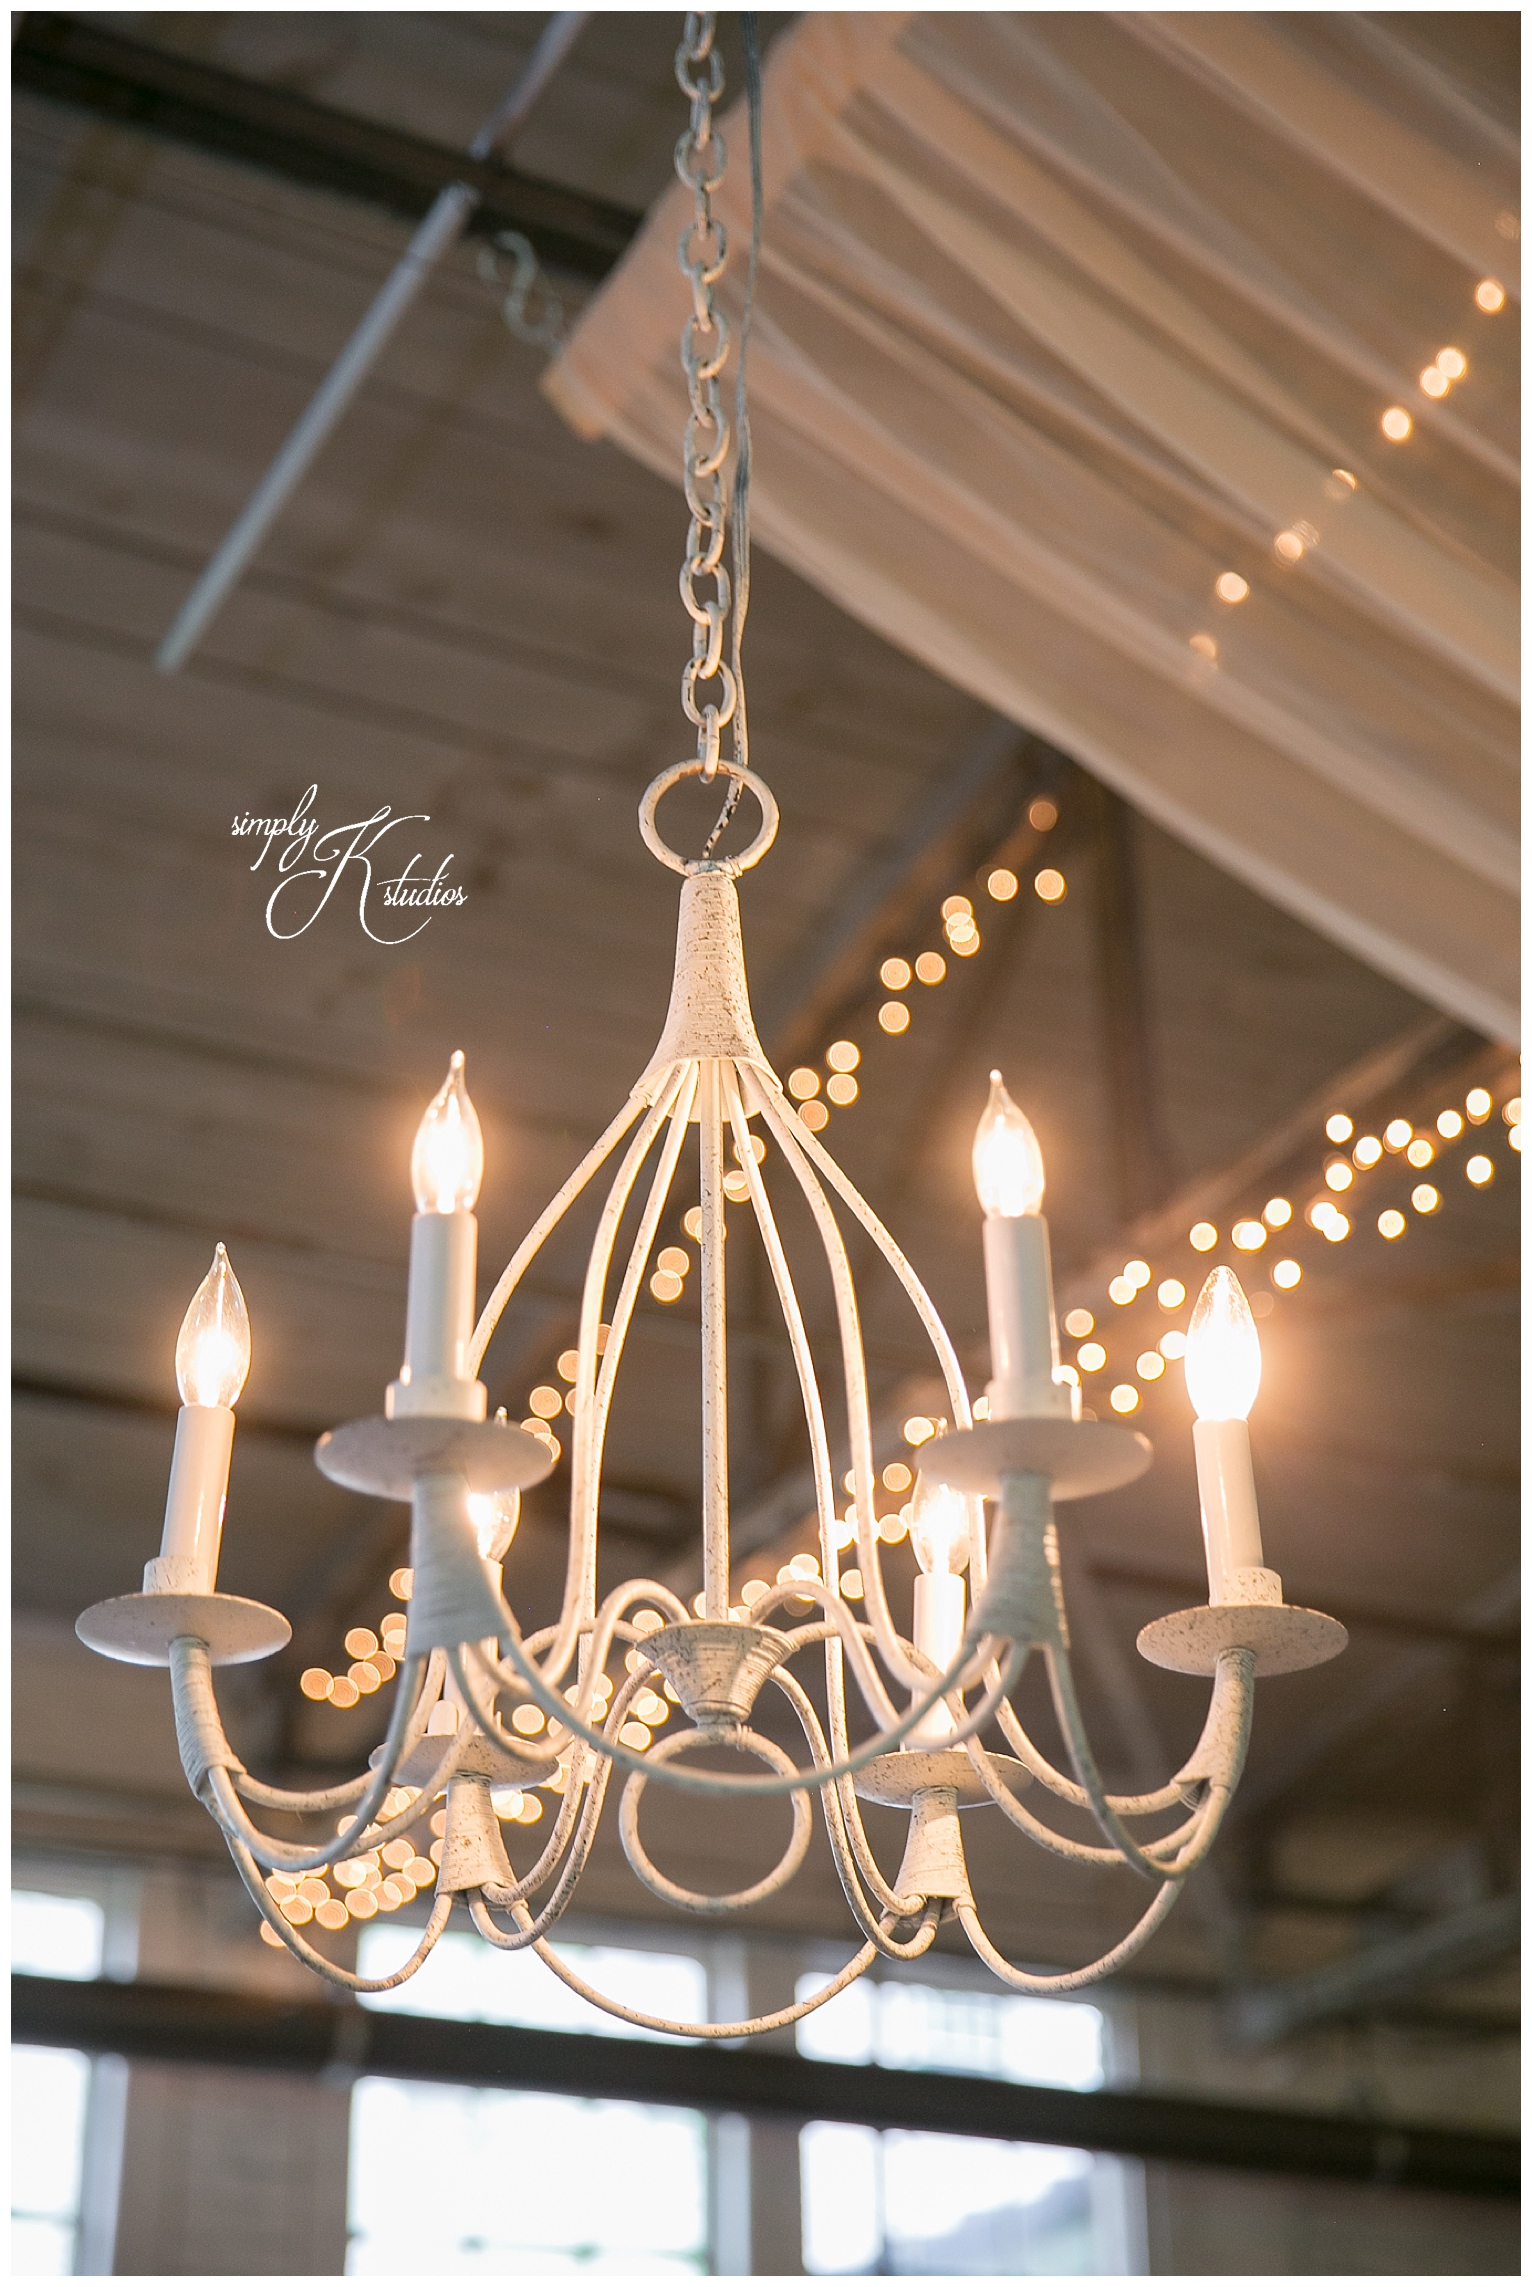 Chandelier at The Lace Factory.jpg